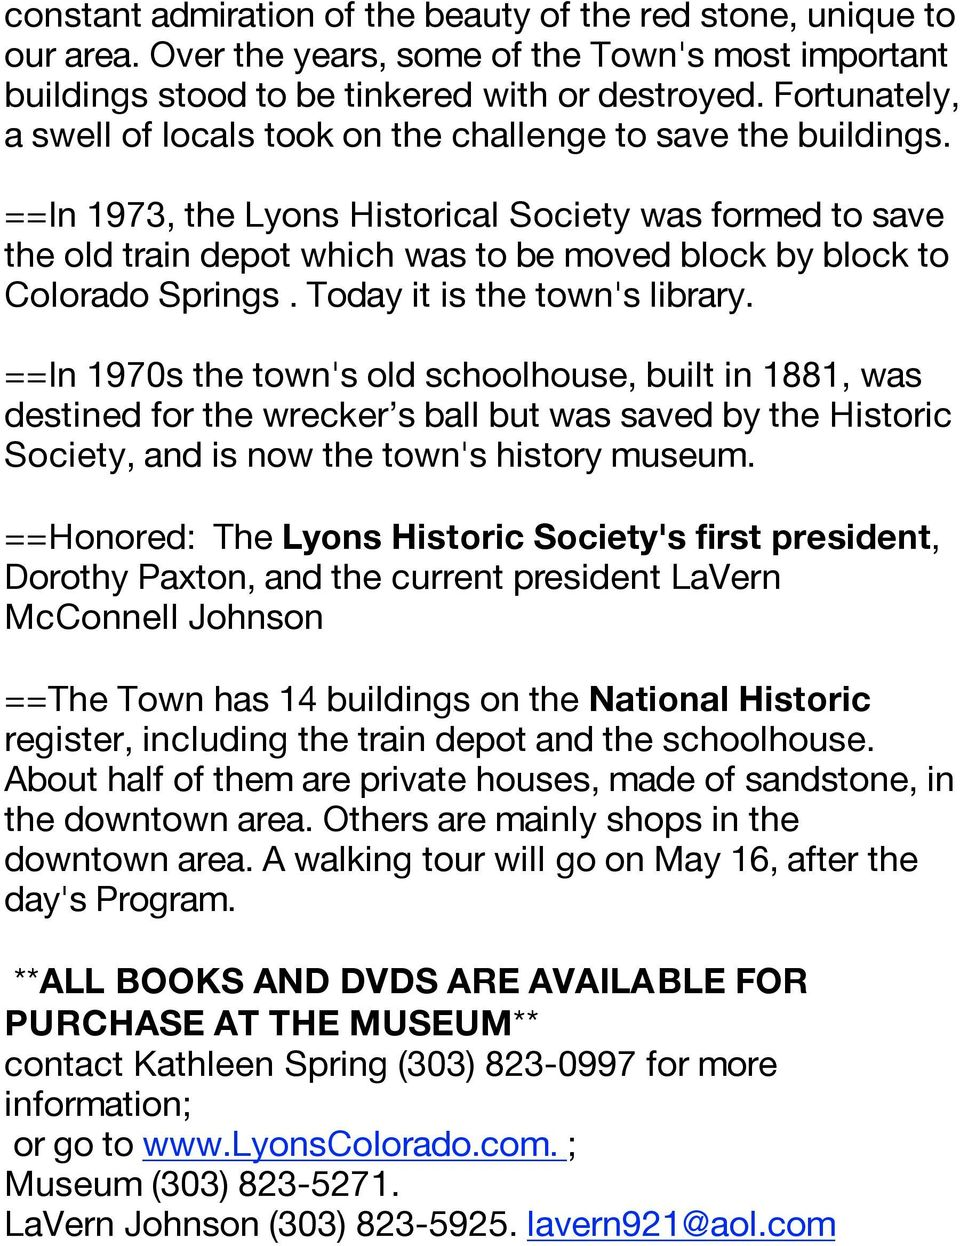 ==In 1973, the Lyons Historical Society was formed to save the old train depot which was to be moved block by block to Colorado Springs. Today it is the town's library.